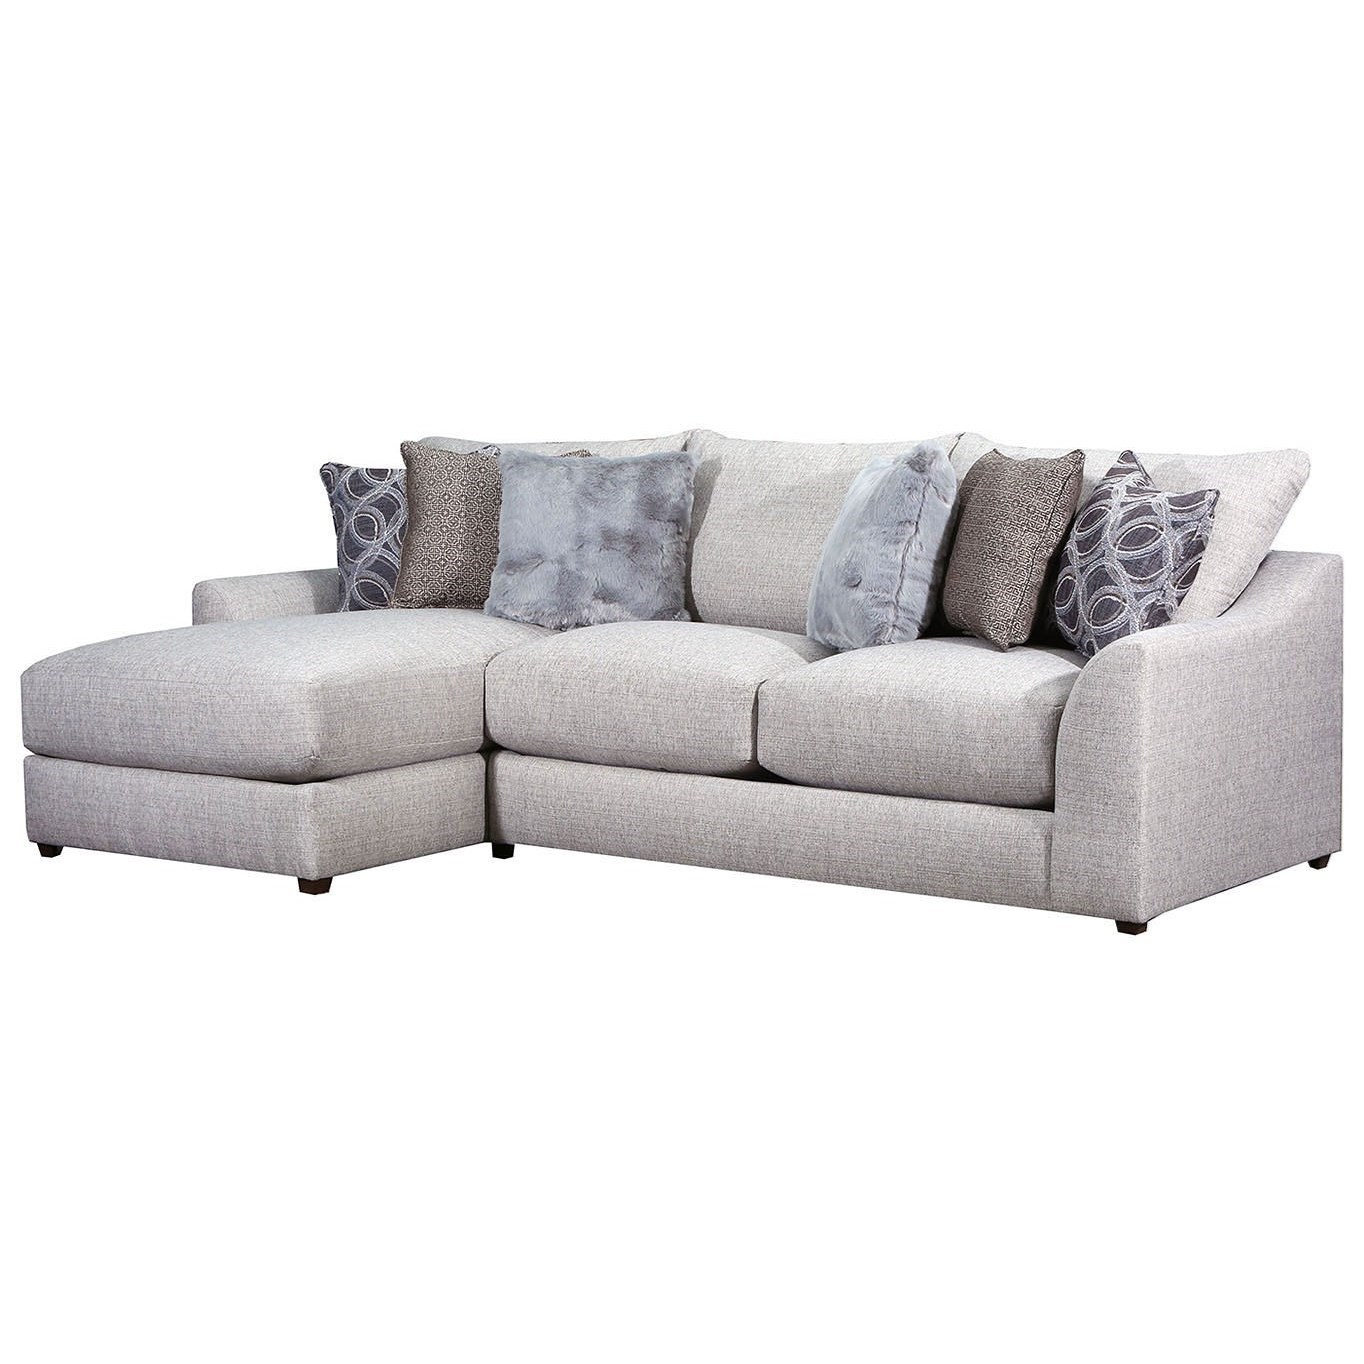 Lane Vivian Casual 2 Piece Sectional Sofa With Chaise Powell S Furniture And Mattress Sectional Sofas